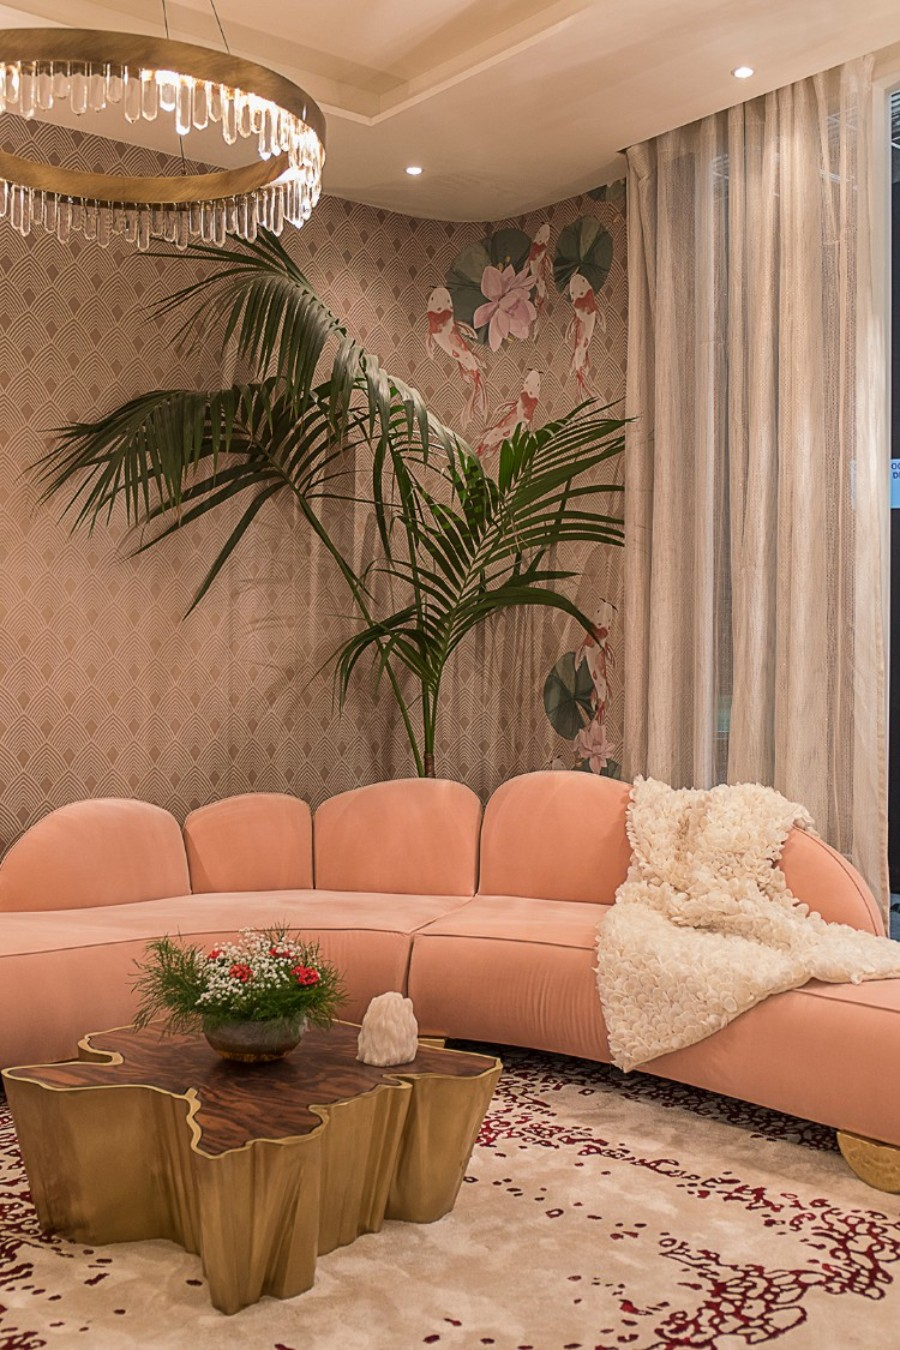 Upholstery Fabrics with Pantone's Color of 2019 pantone's color Upholstery Fabrics with Pantone's Colour of 2019 Upholstery Fabrics with Pantones Color of 20198